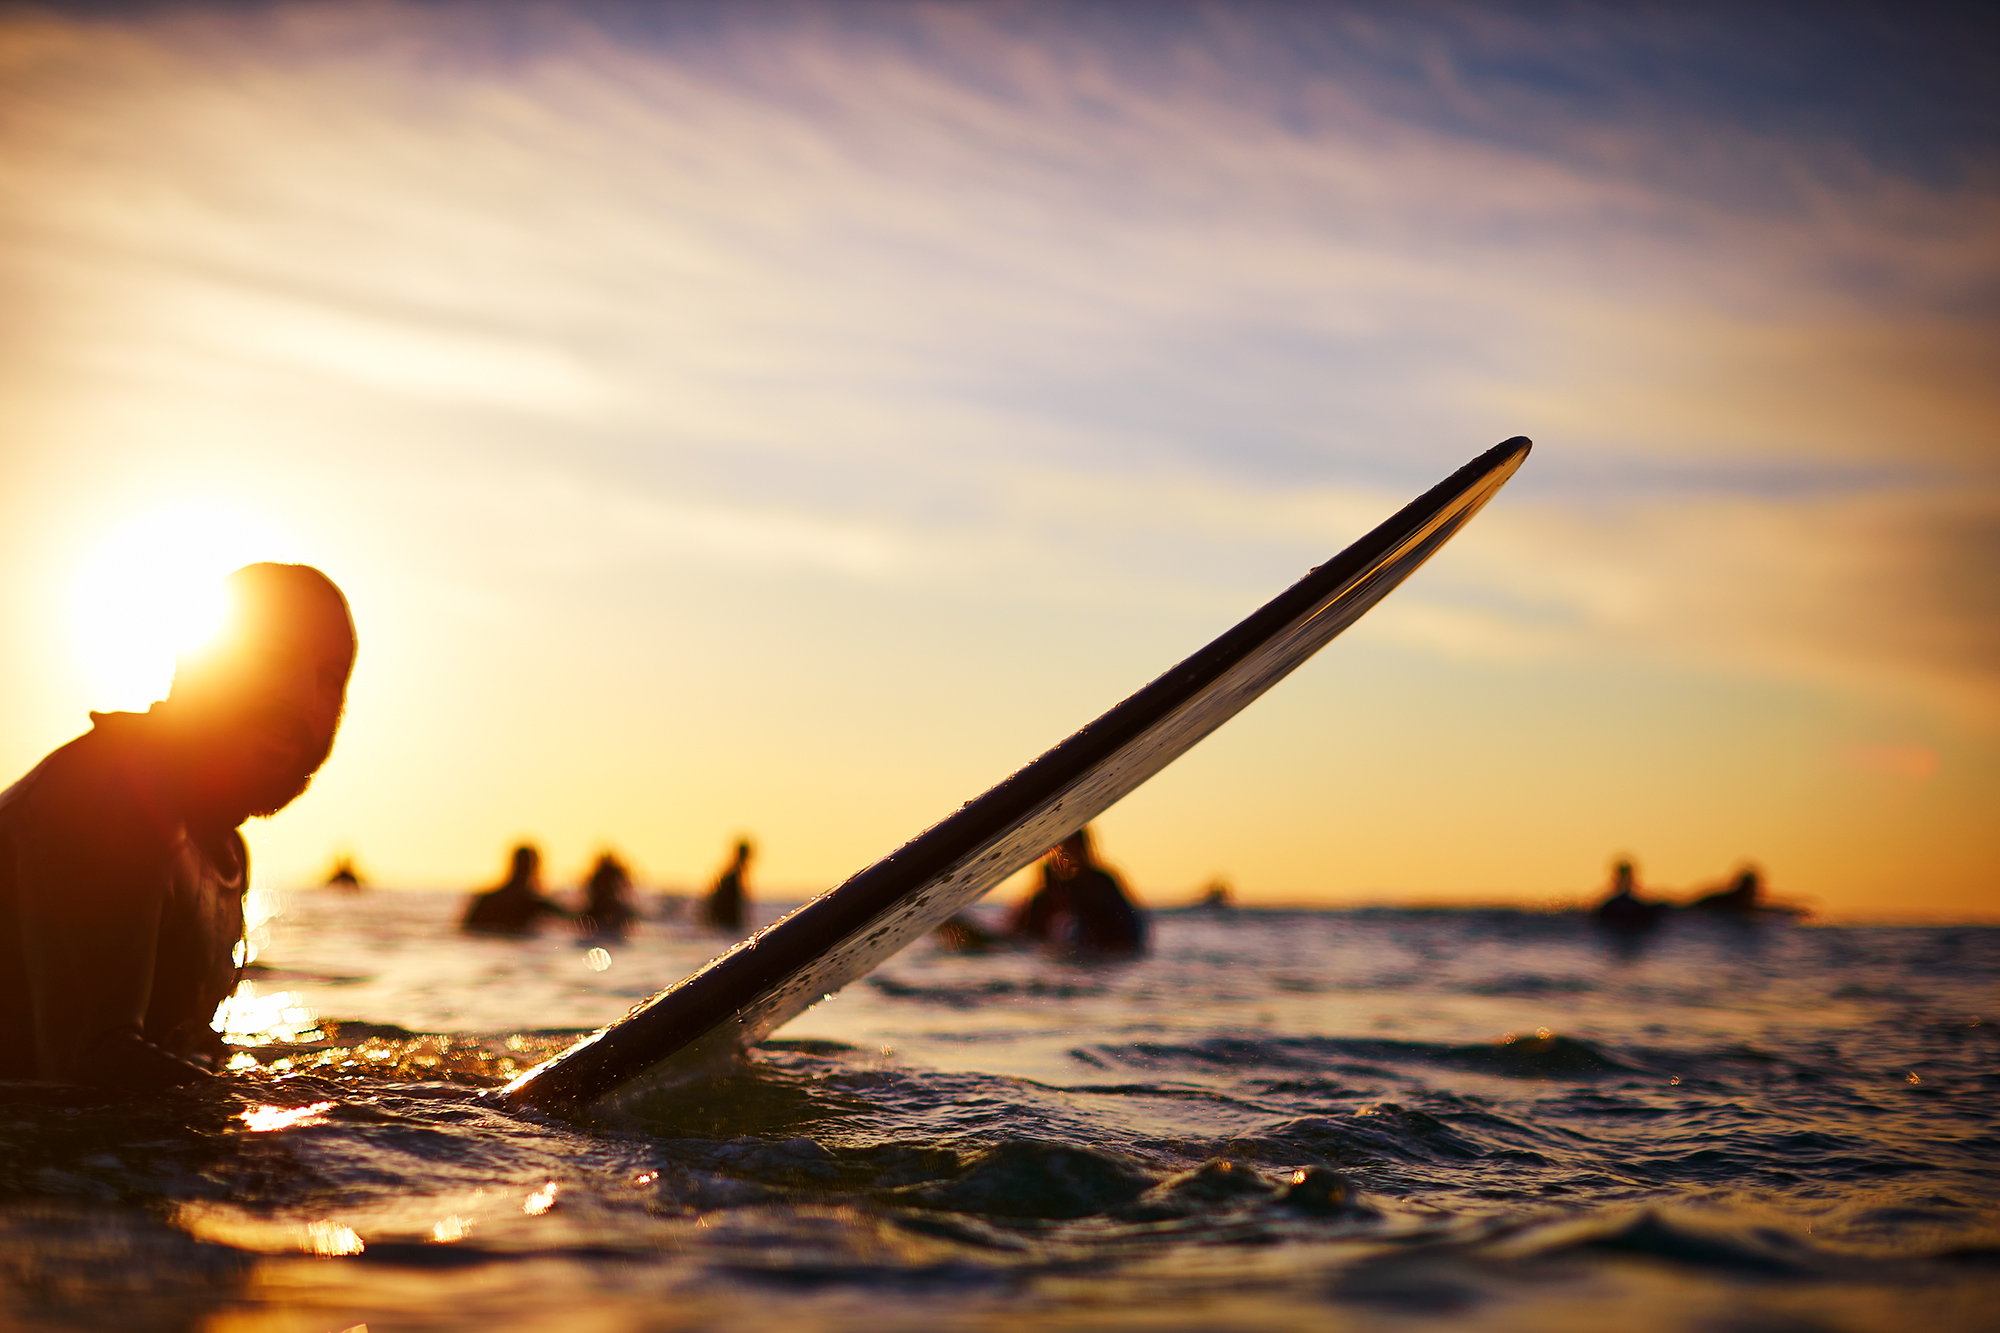 Aircraft Carrier Aquabumps c2r2460